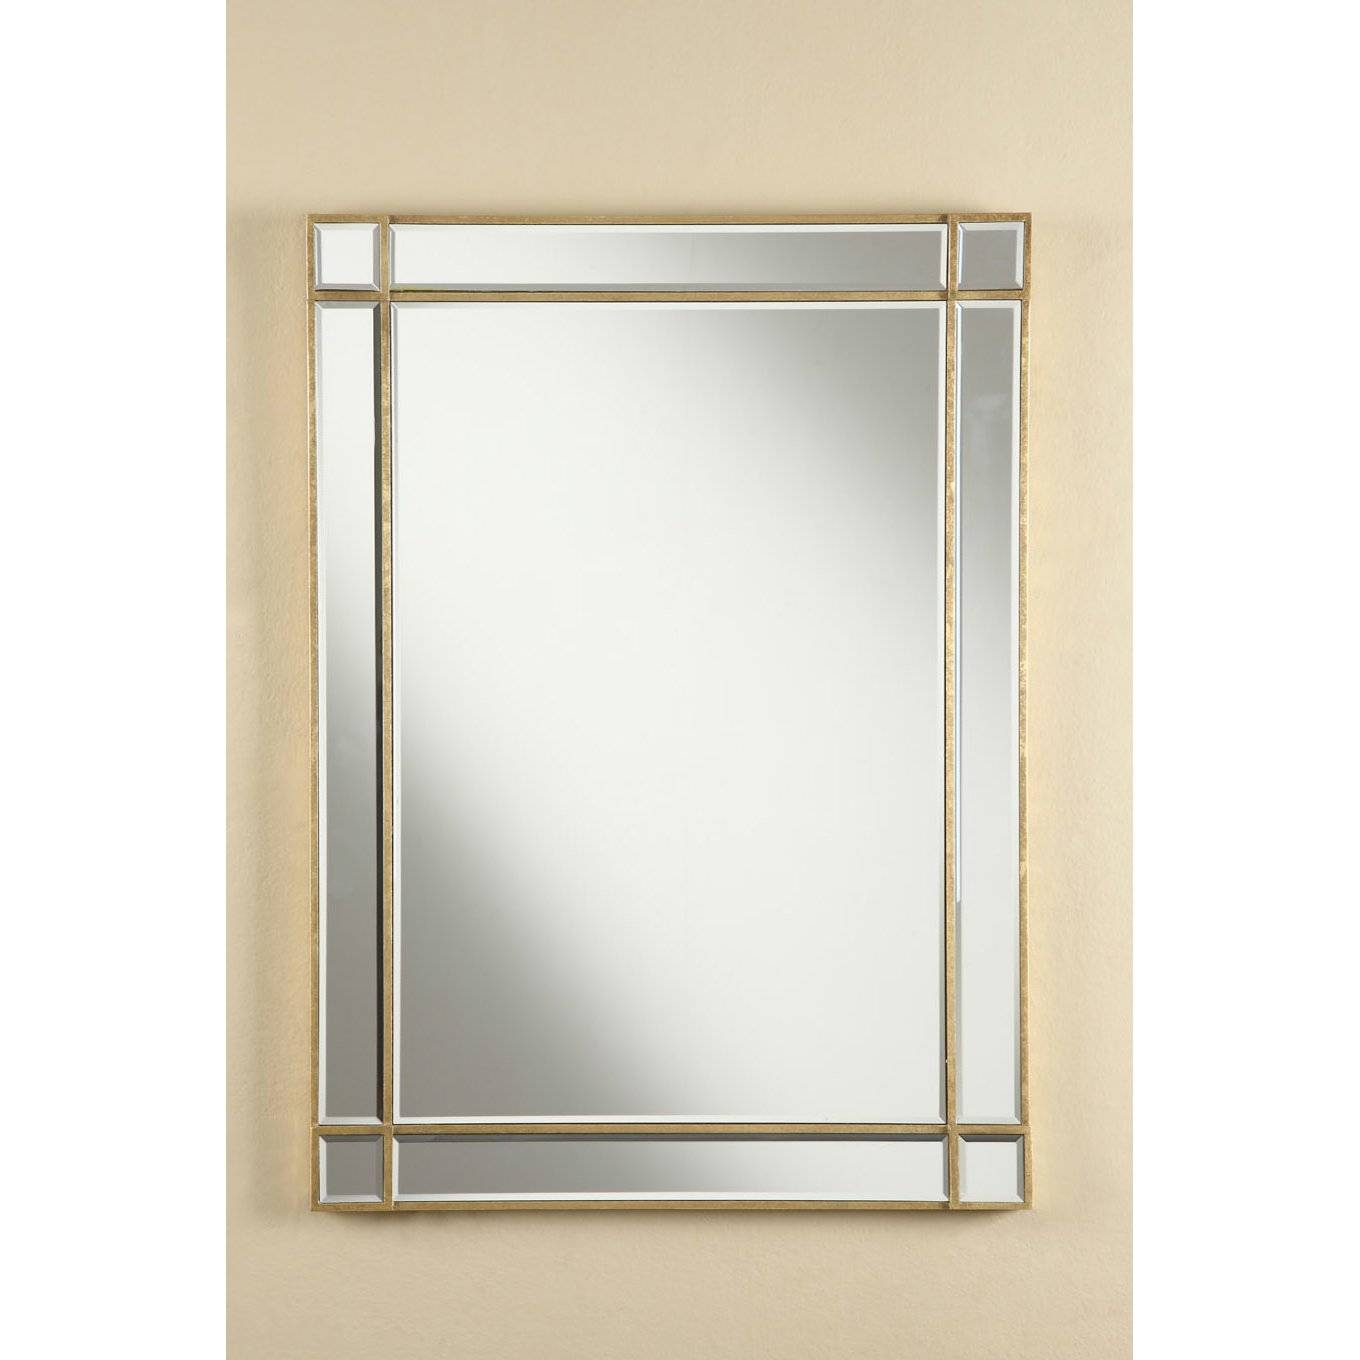 Florentina Antiqued Wall Mirror & Reviews | Joss & Main throughout Antiqued Wall Mirrors (Image 15 of 25)